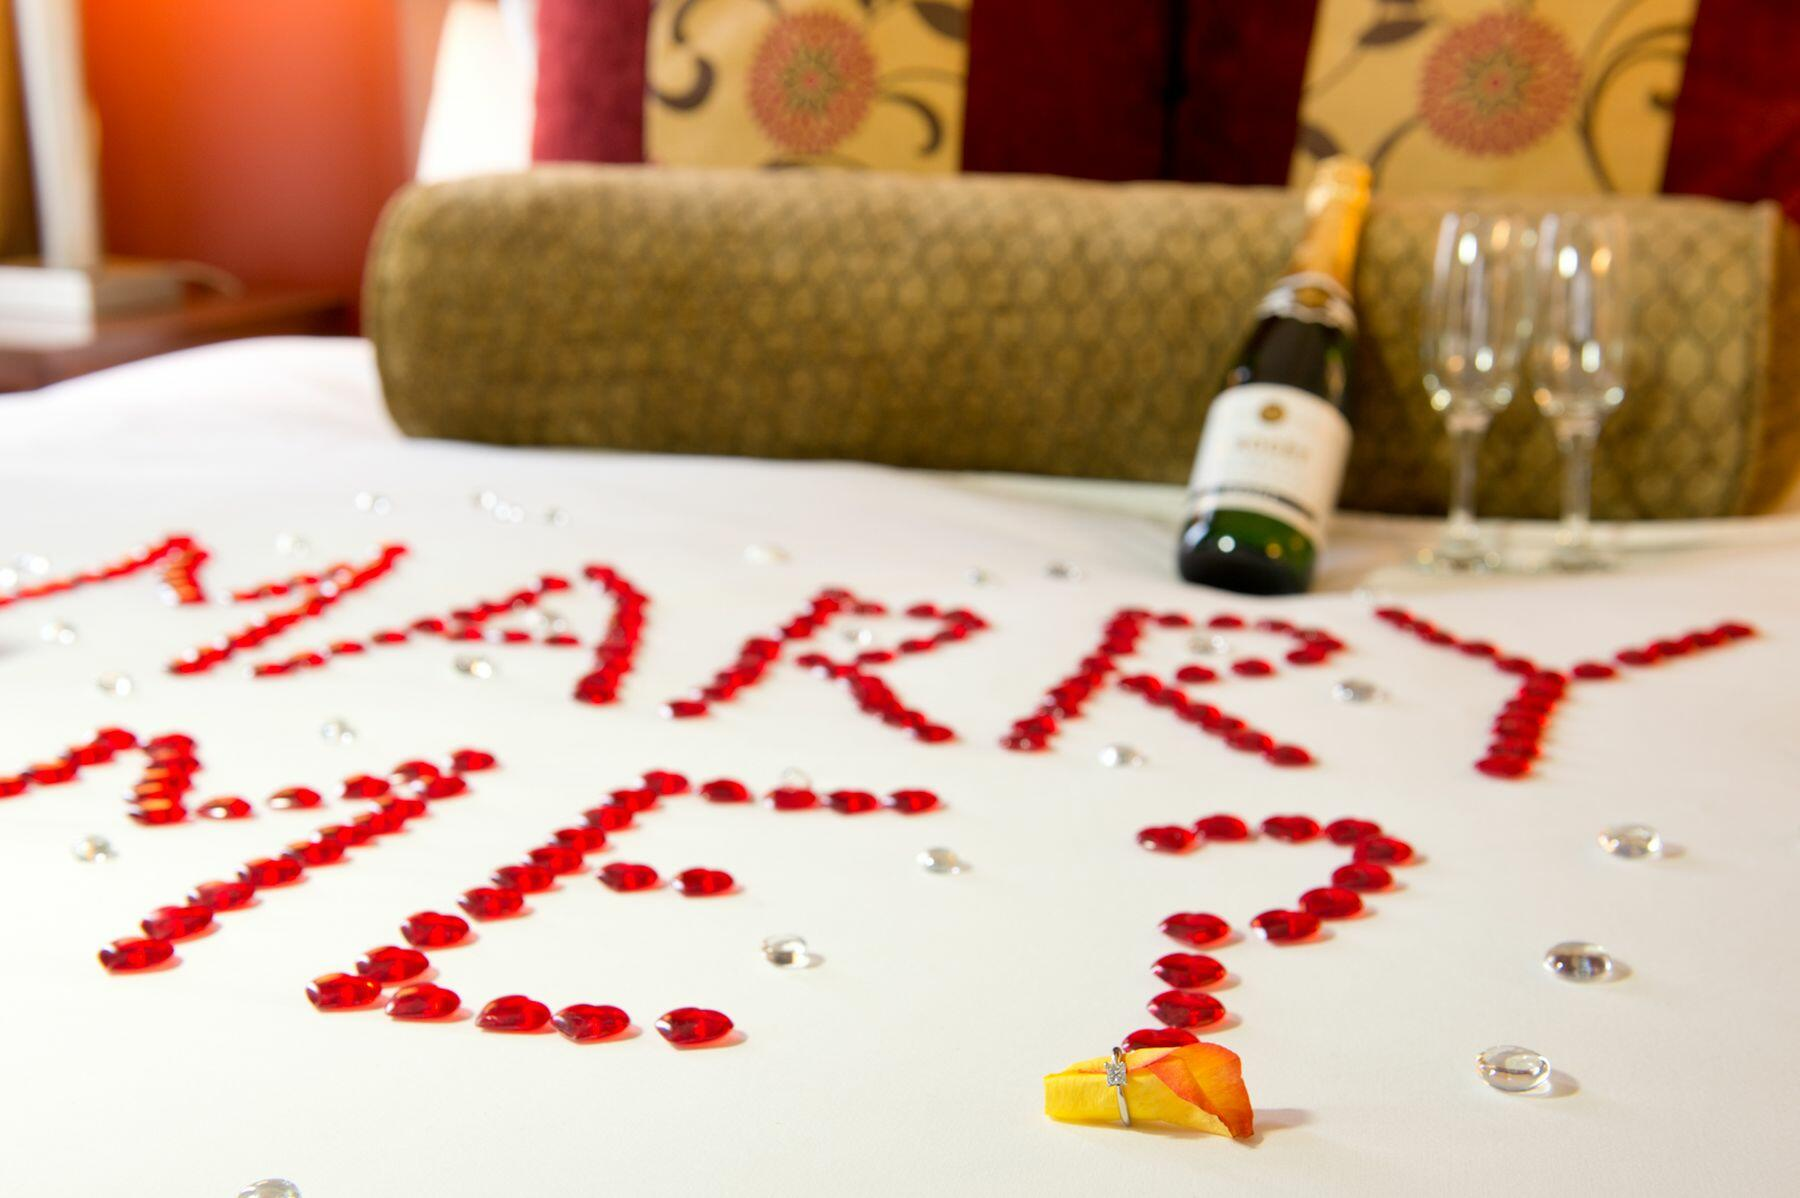 Marry Me? written out in rose petals on bed.